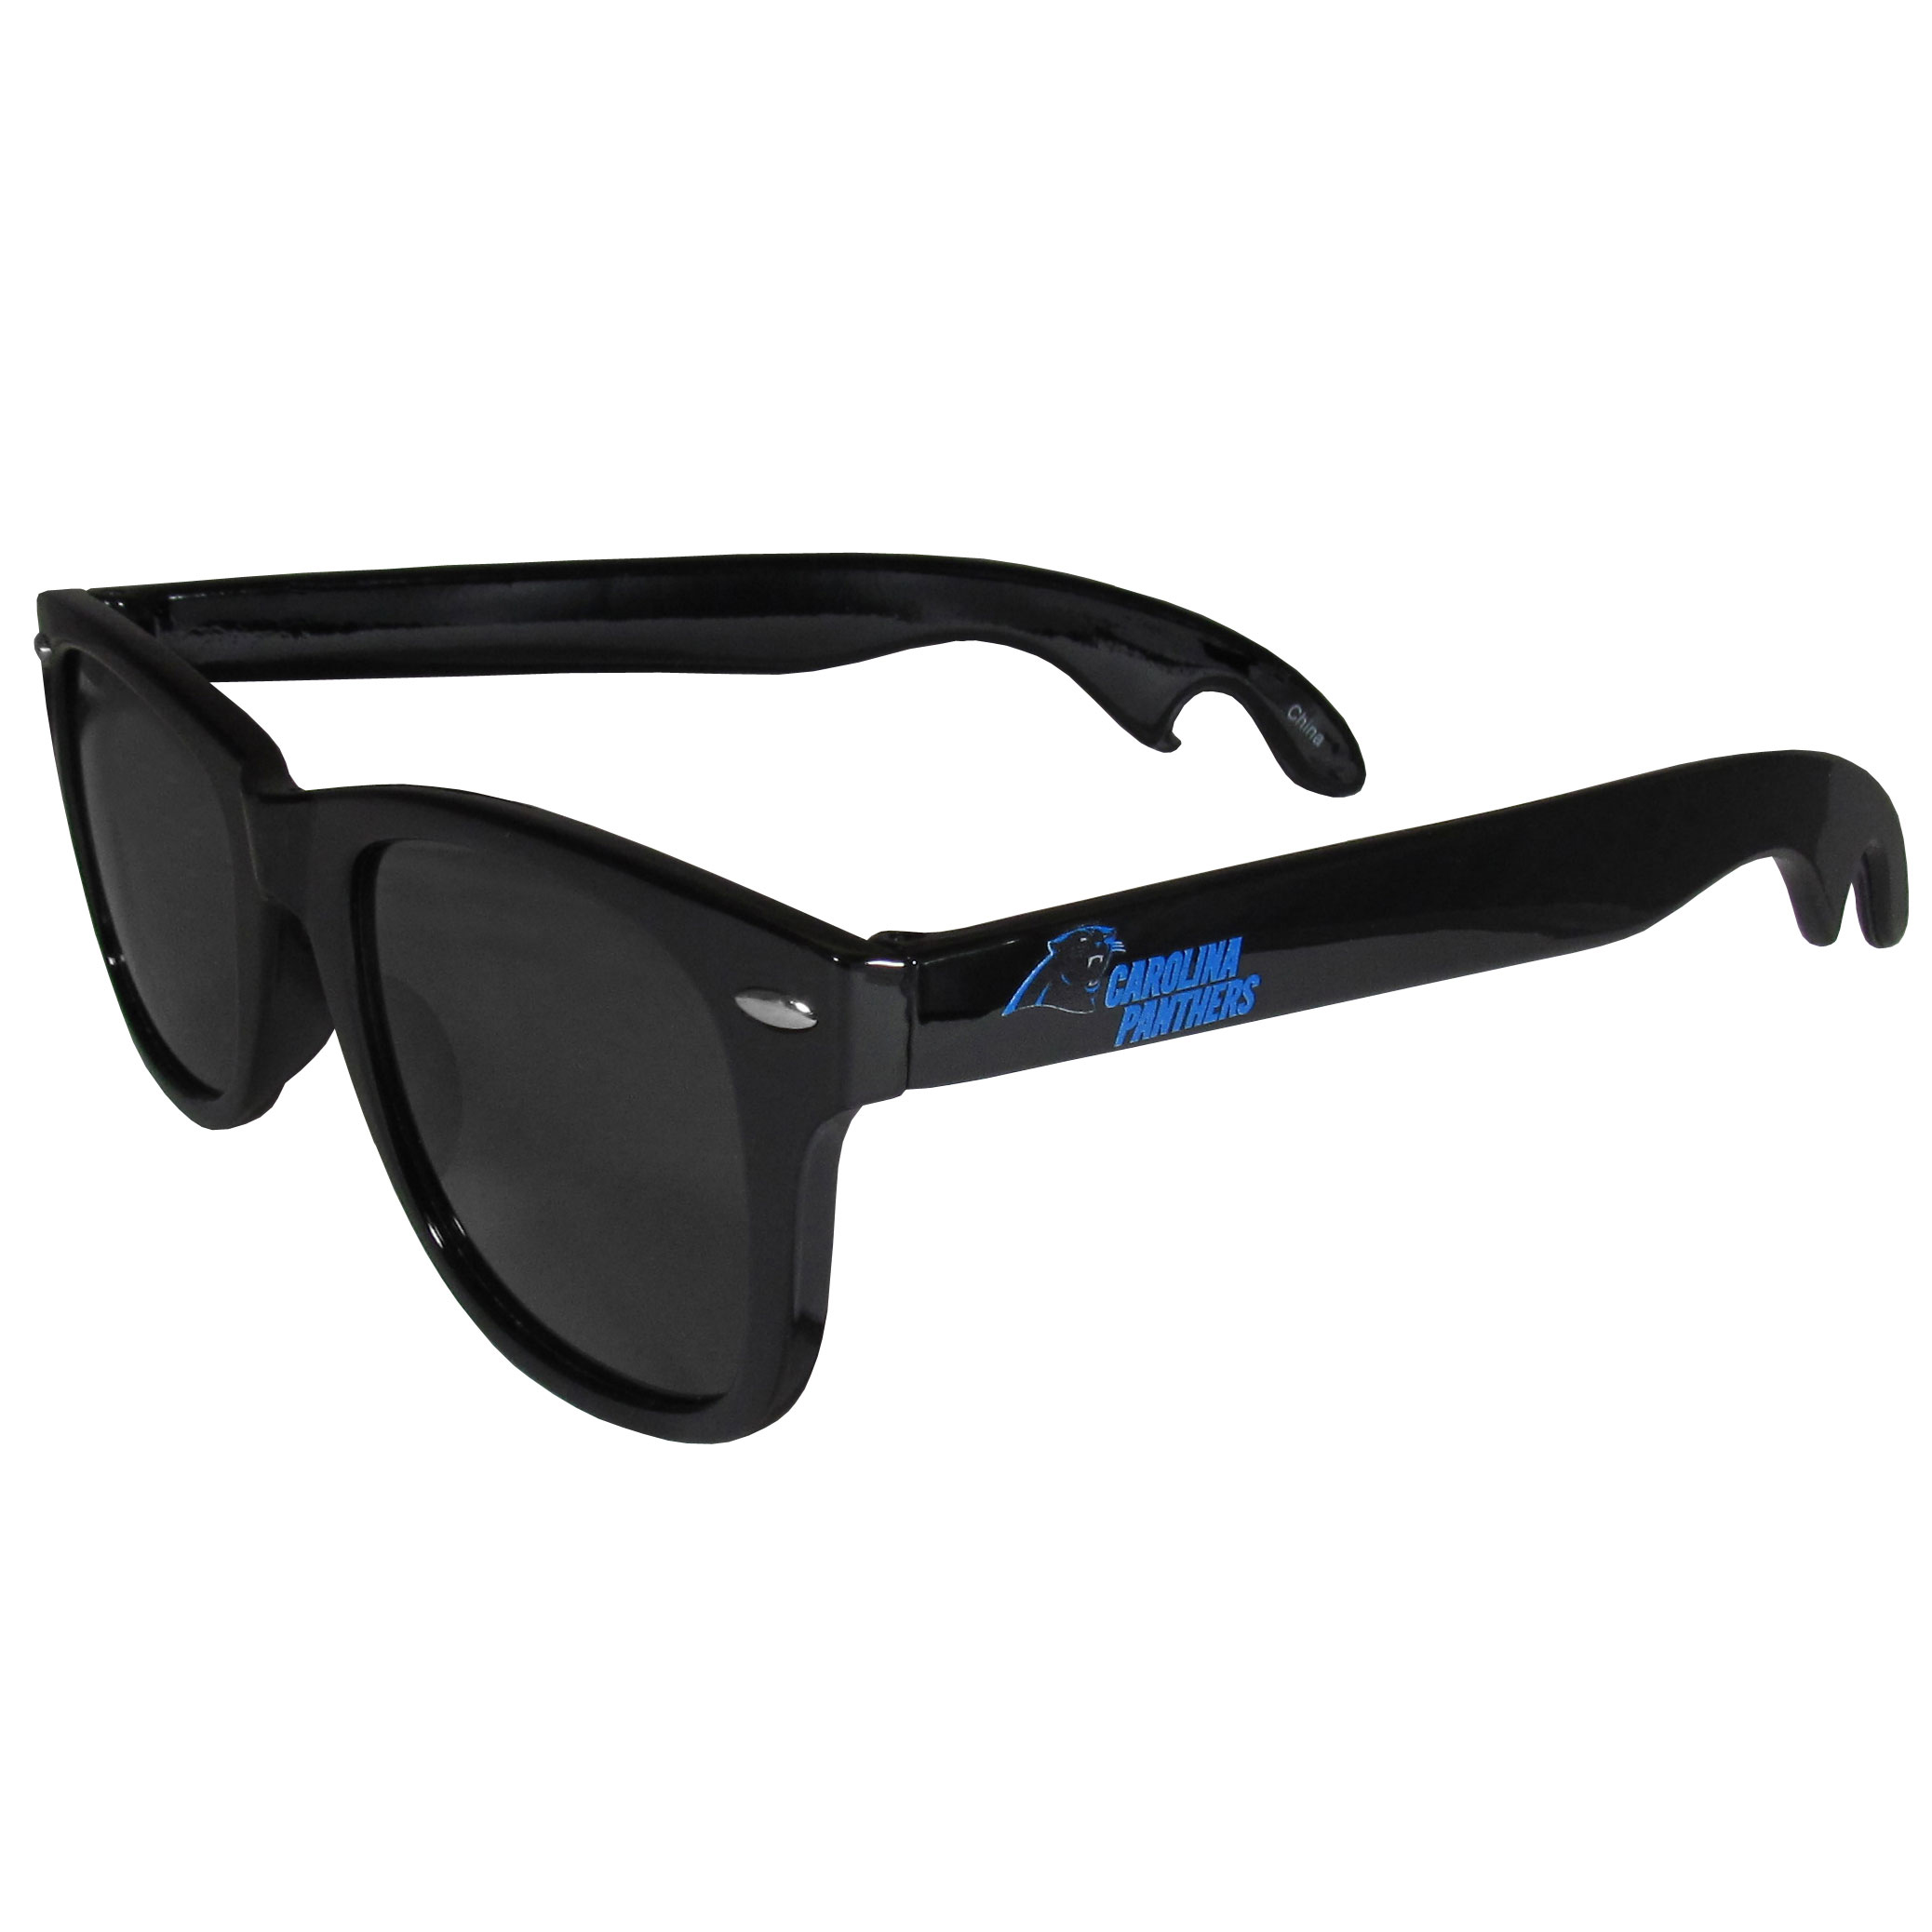 Carolina Panthers Beachfarer Bottle Opener Sunglasses - Seriously, these sunglasses open bottles! Keep the party going with these amazing Carolina Panthers bottle opener sunglasses. The stylish retro frames feature team designs on the arms and functional bottle openers on the end of the arms. Whether you are at the beach or having a backyard BBQ on game day, these shades will keep your eyes protected with 100% UVA/UVB protection and keep you hydrated with the handy bottle opener arms.